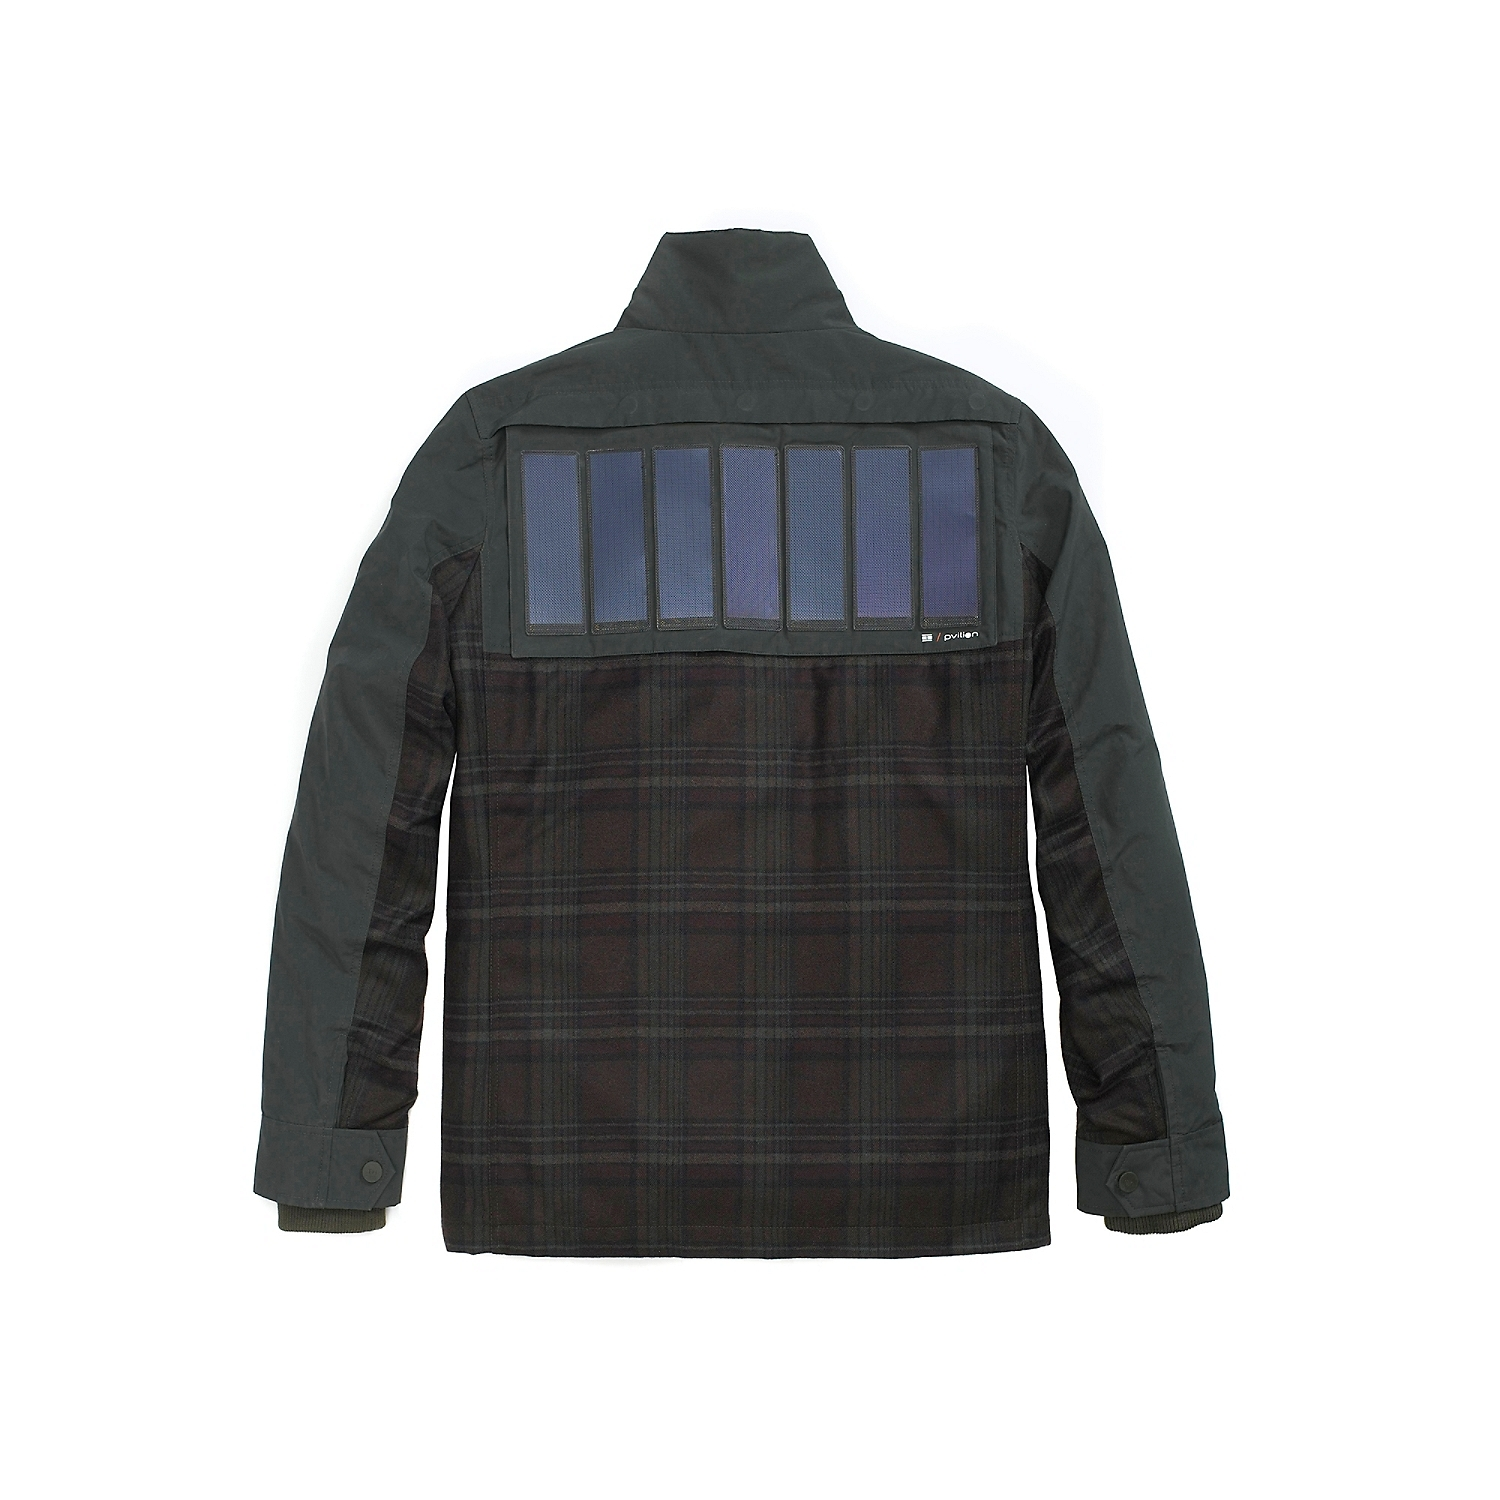 Foto de Tommy Hilfiger Solar Powered Jacket (2/6)